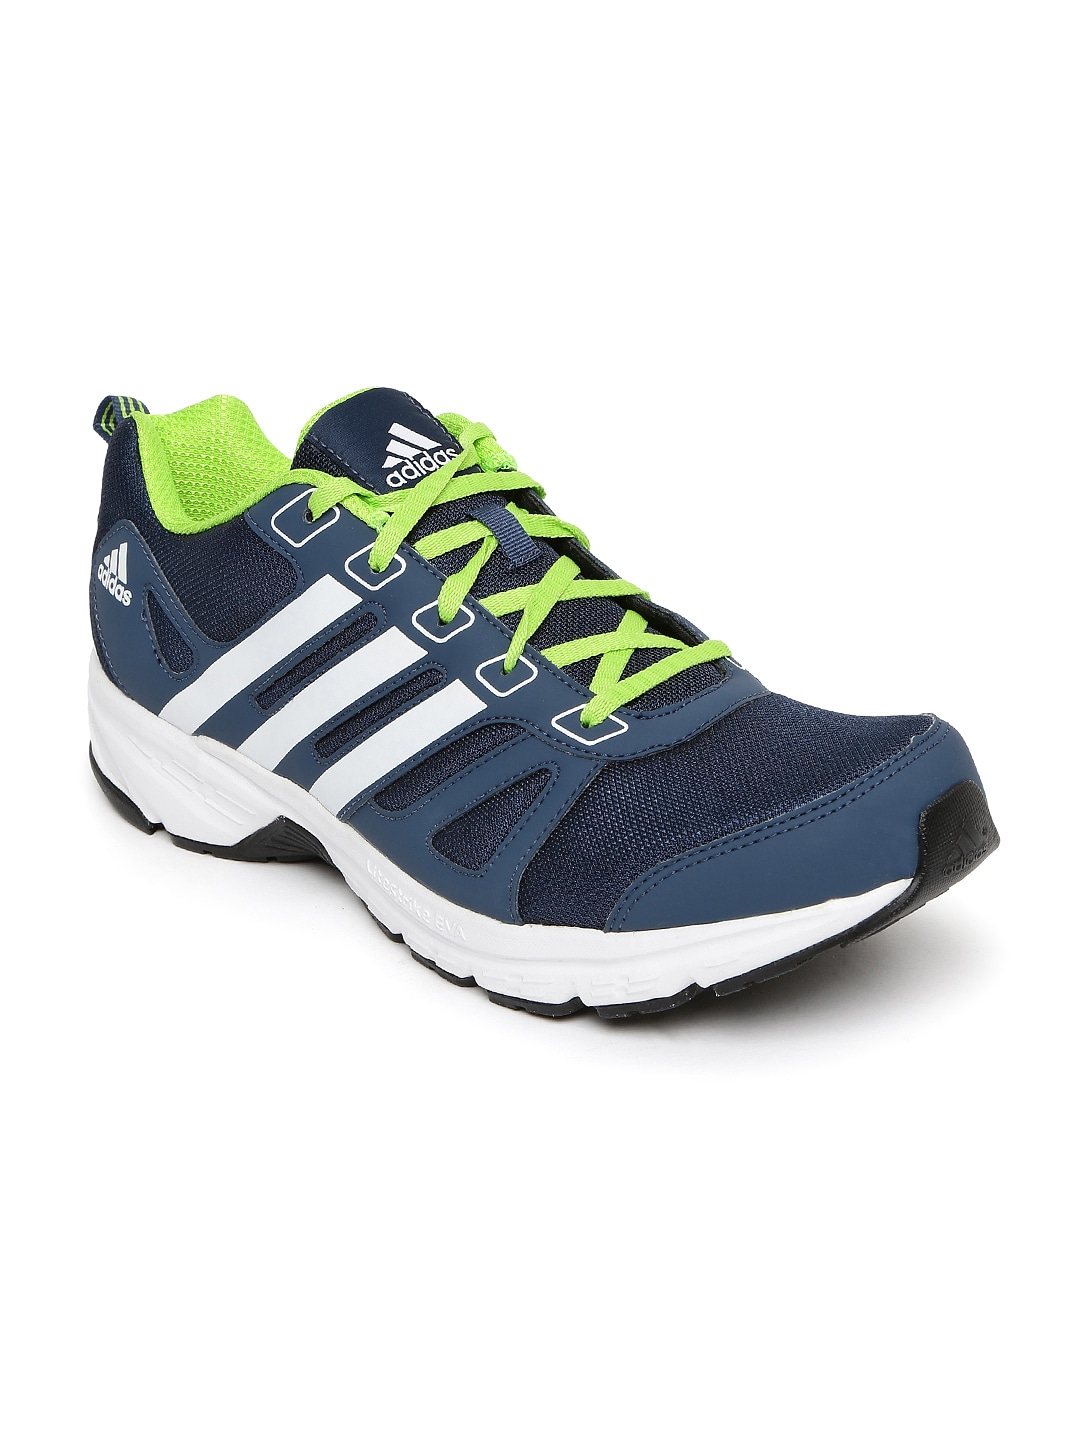 cheaper 146da 3135a Adidas b79169 Men Navy Adi Primo 1 0 M Running Shoes- Price in India